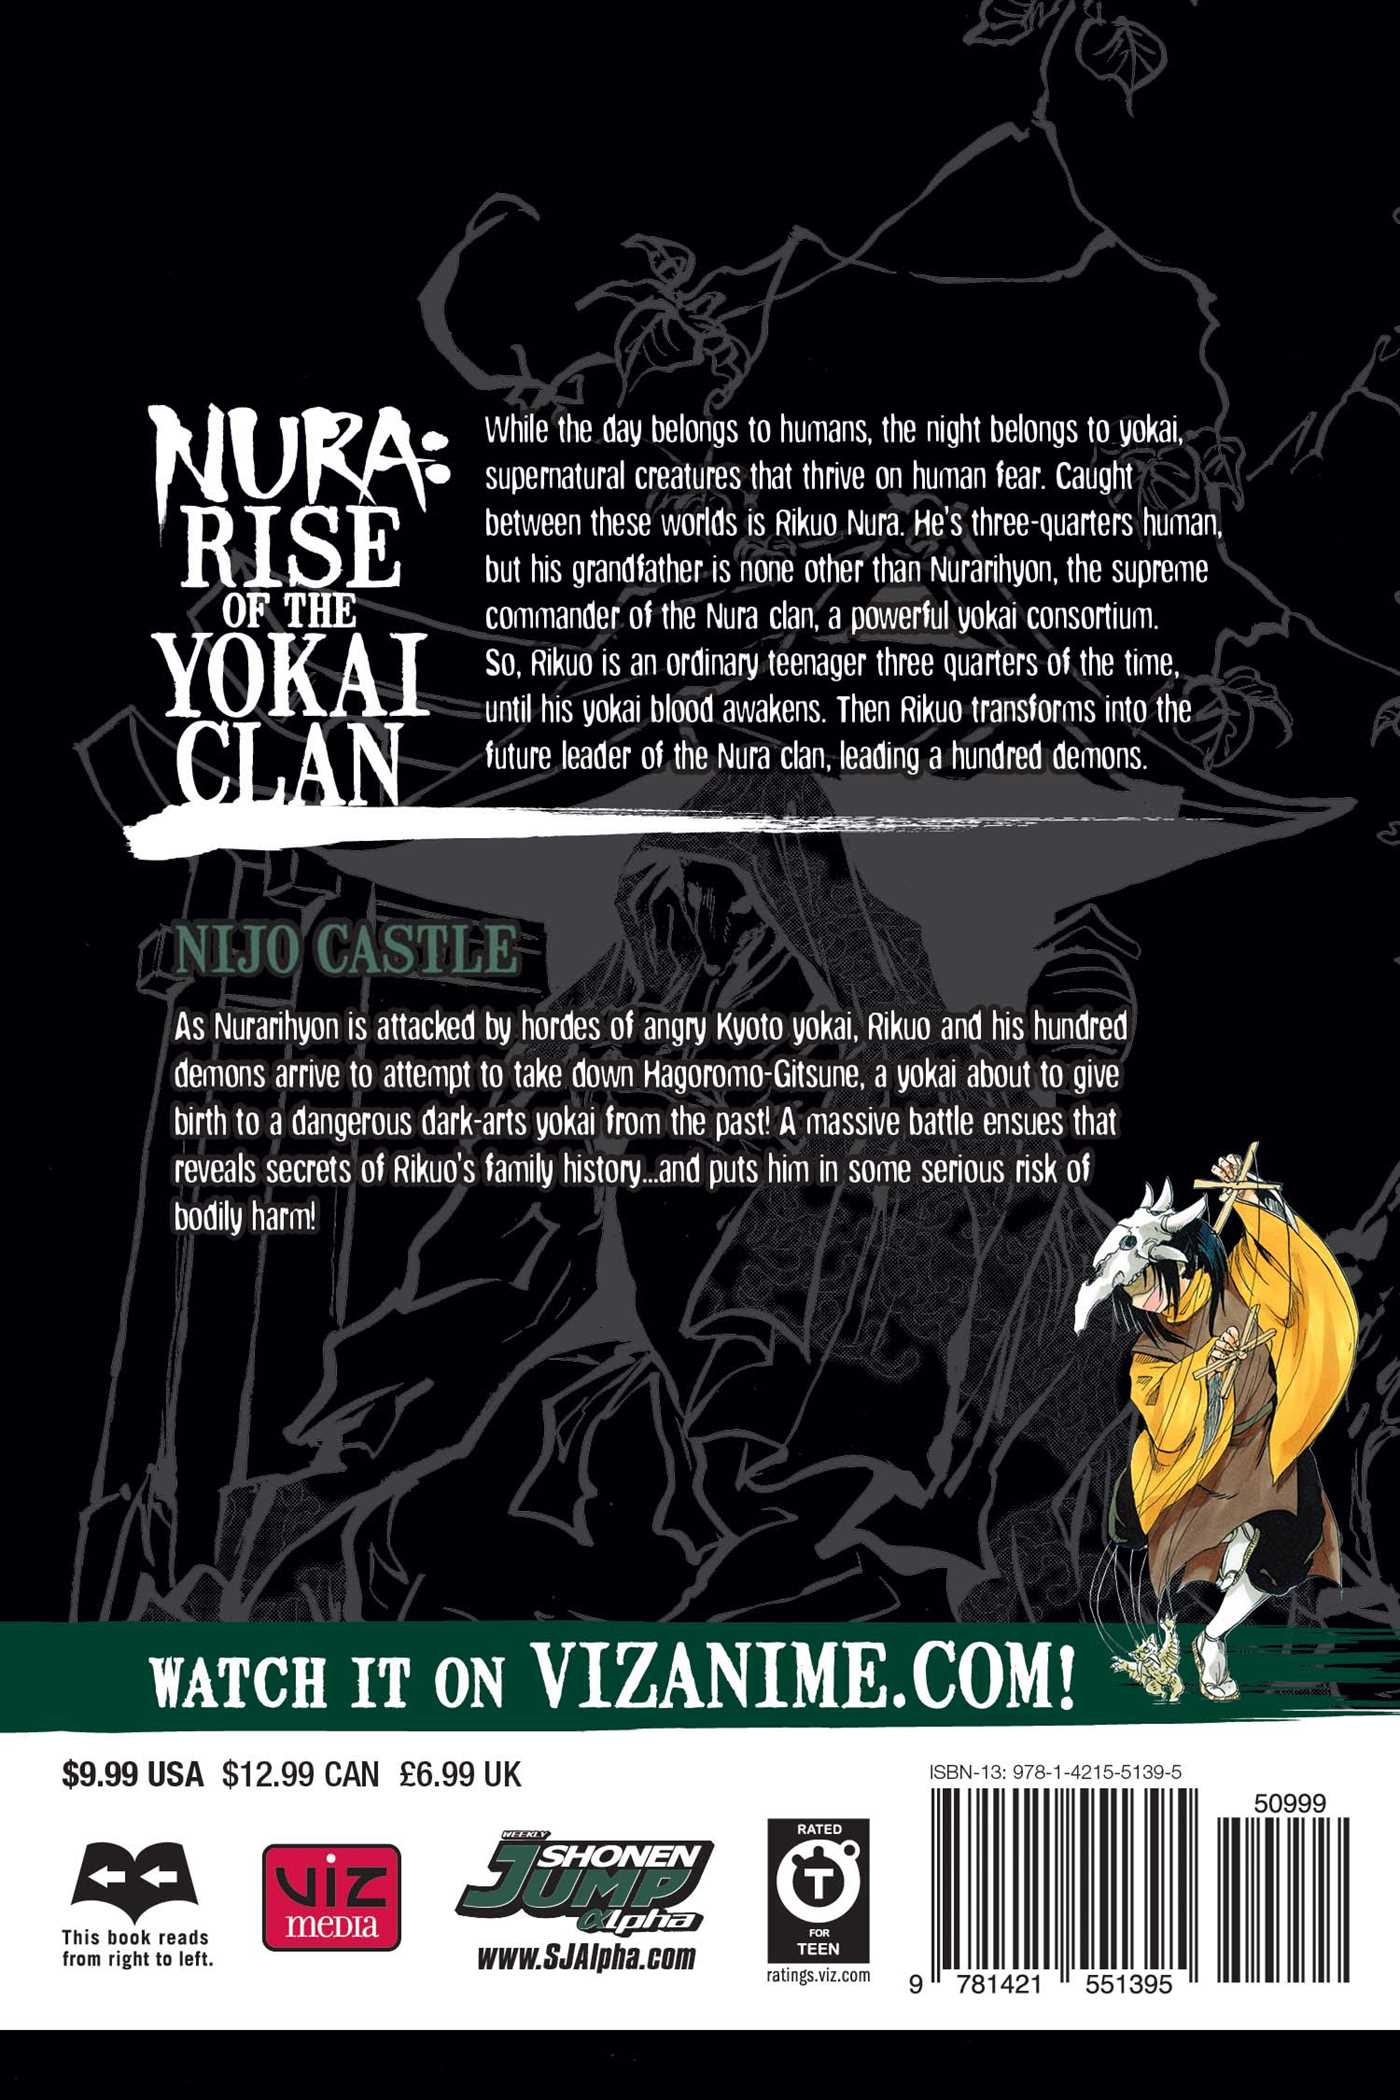 Nura rise of the yokai clan vol 14 9781421551395 hr back